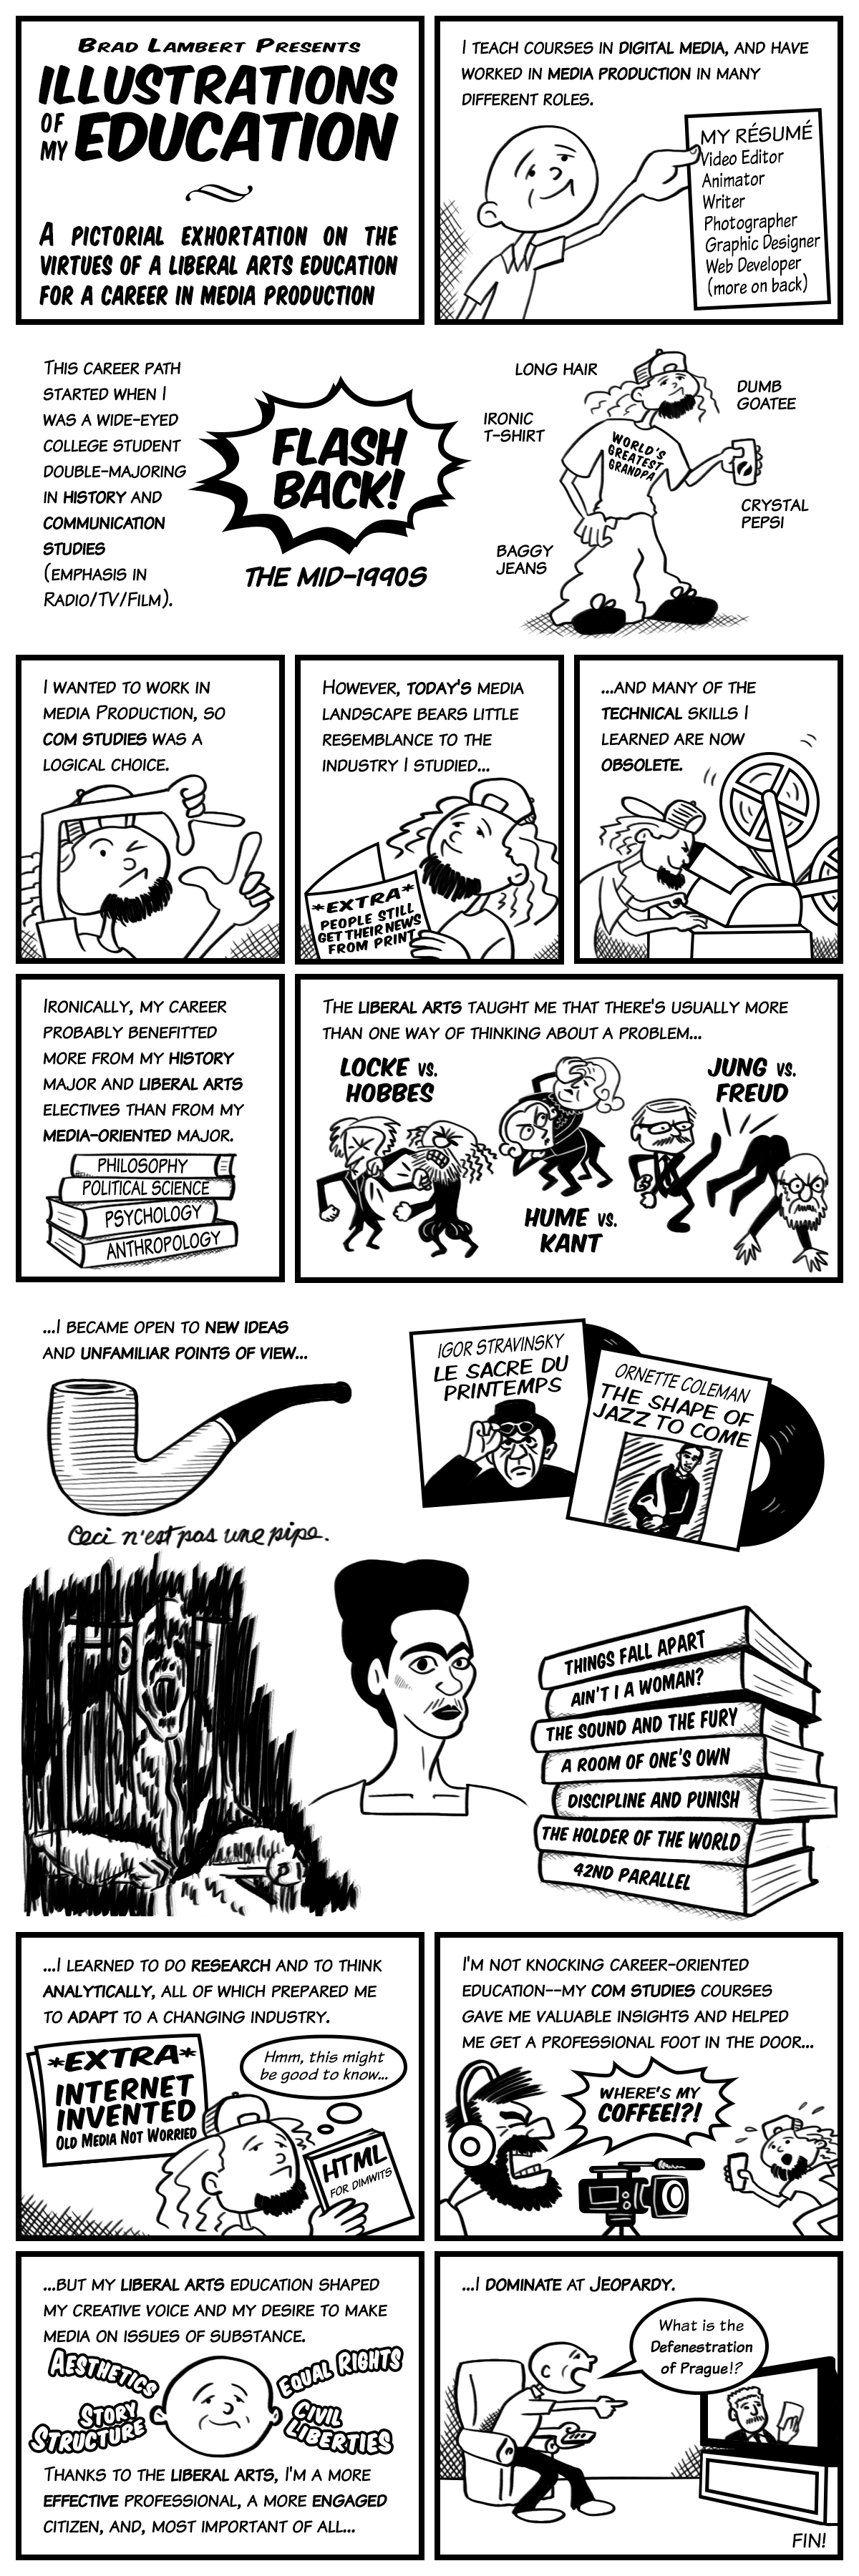 illustrations of my education a pictorial exhortation on the graphic essay on the liberal arts